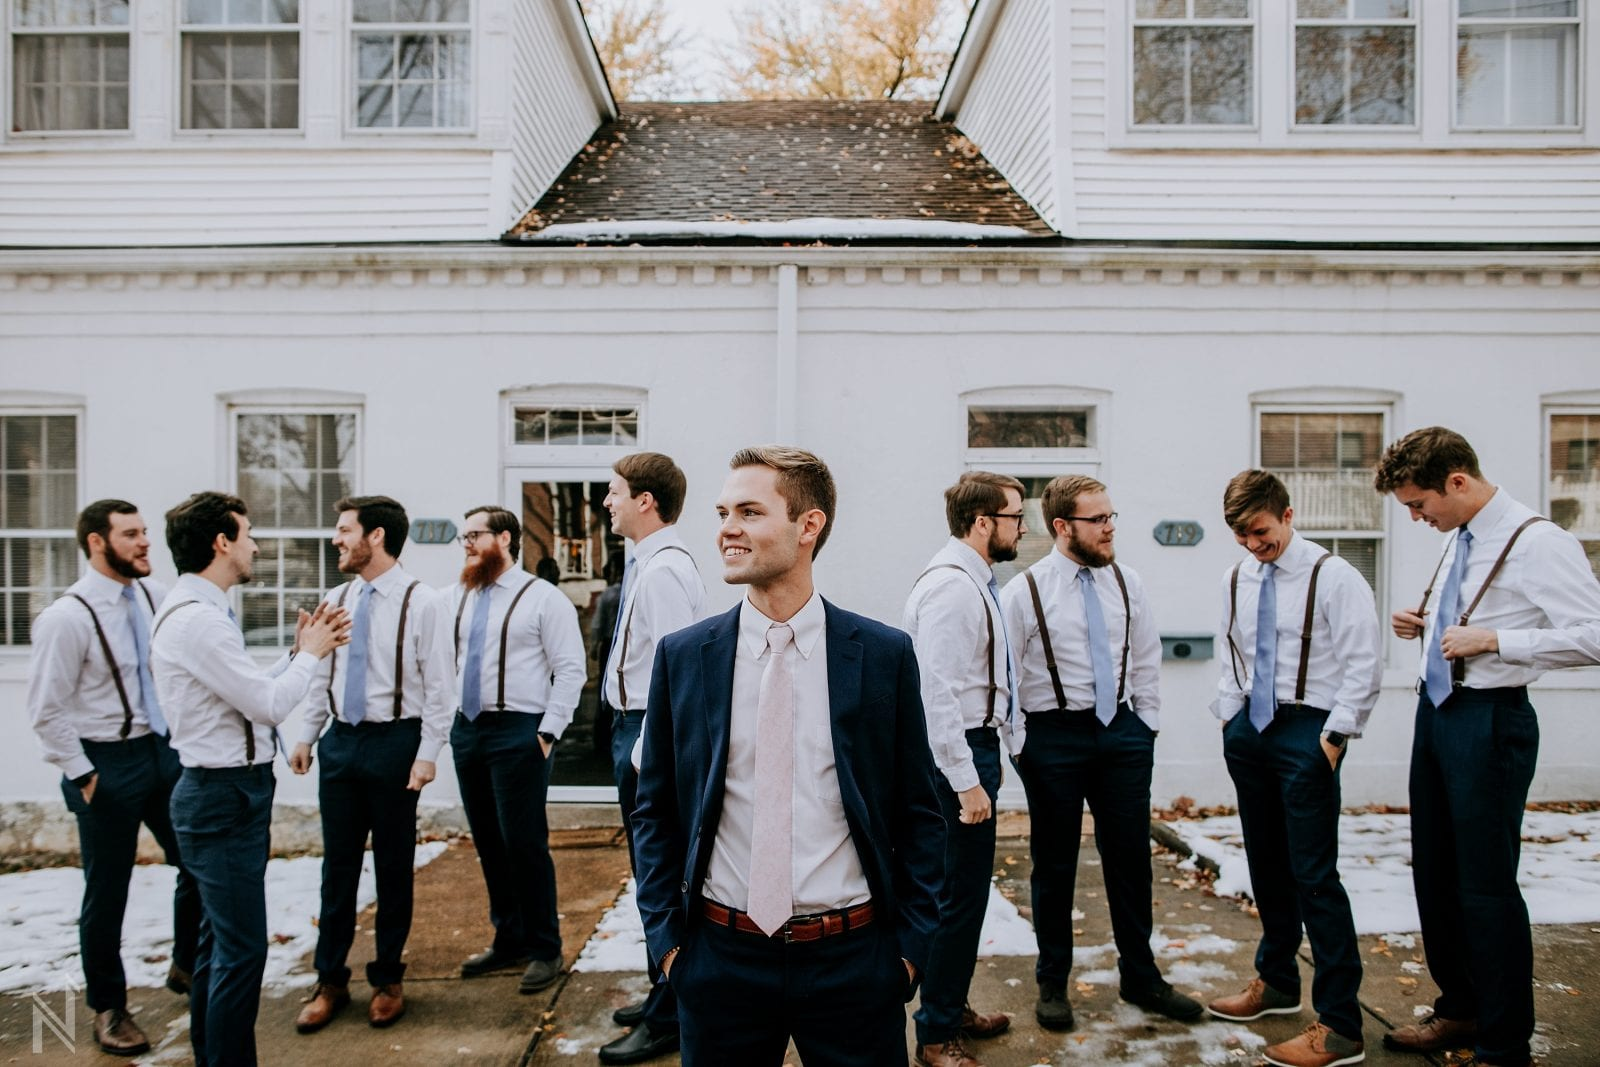 groomsmen photos at st. charles airbnb in missouri